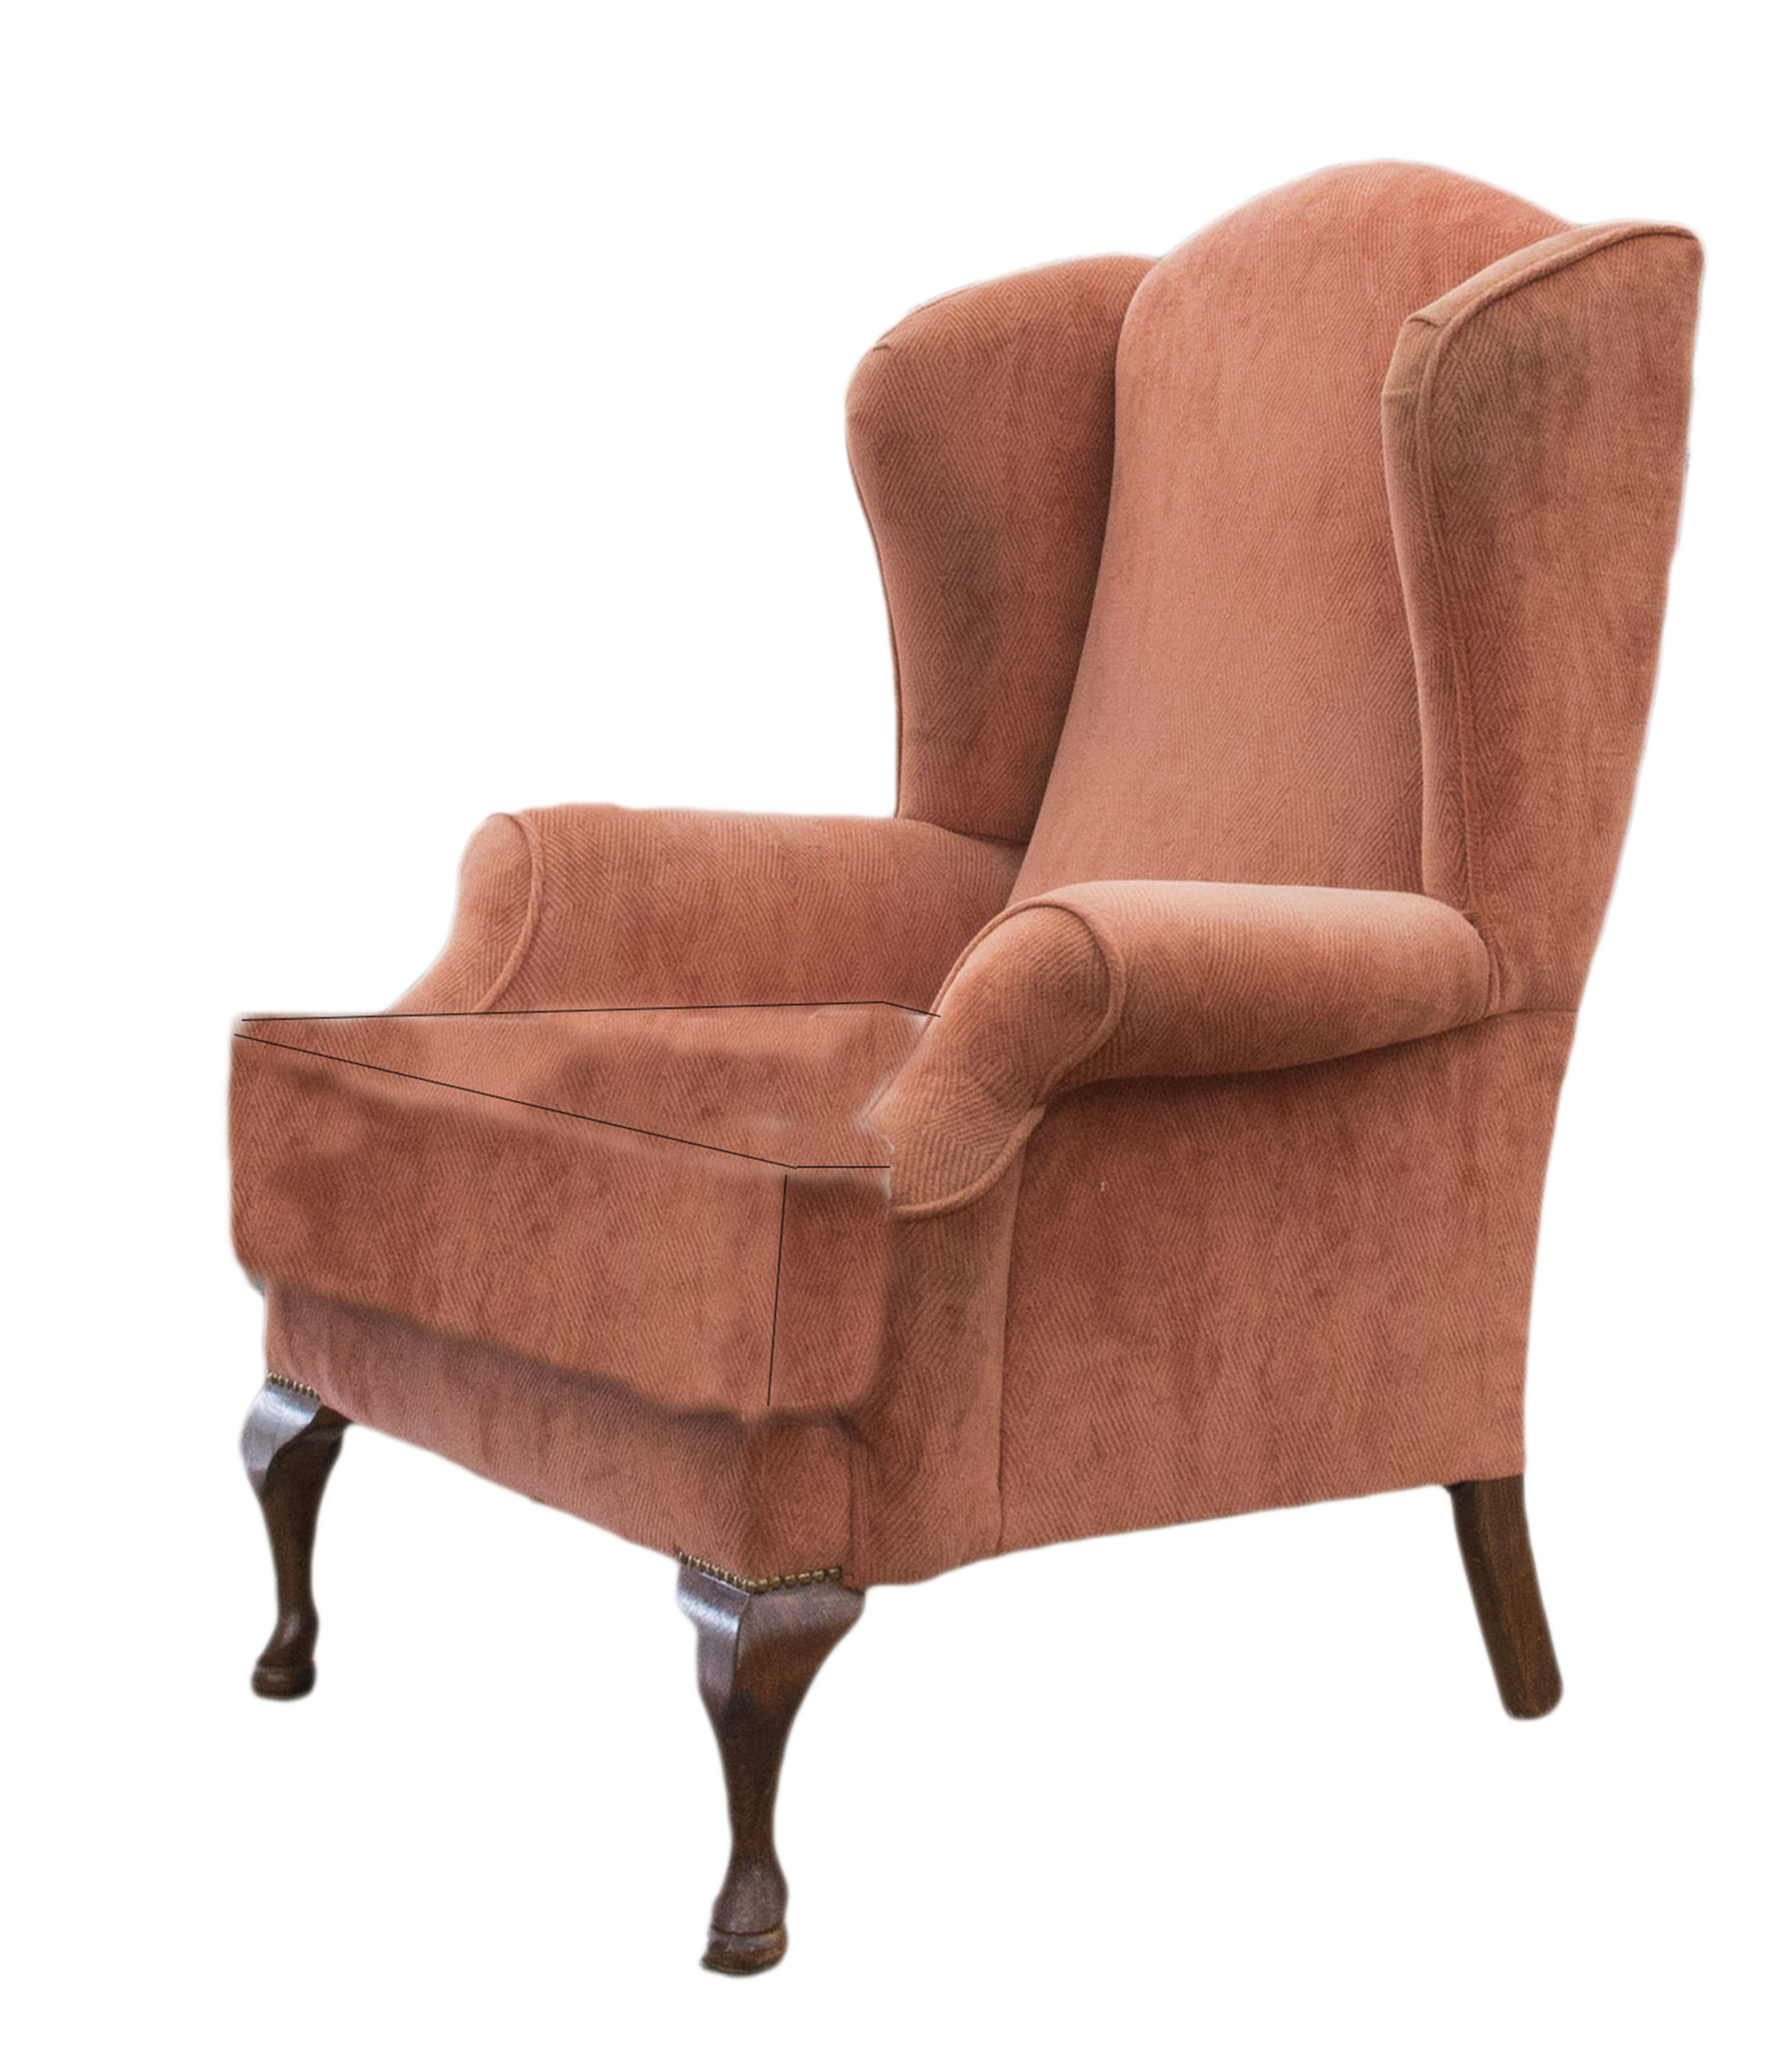 Queen Anne Chair Before side